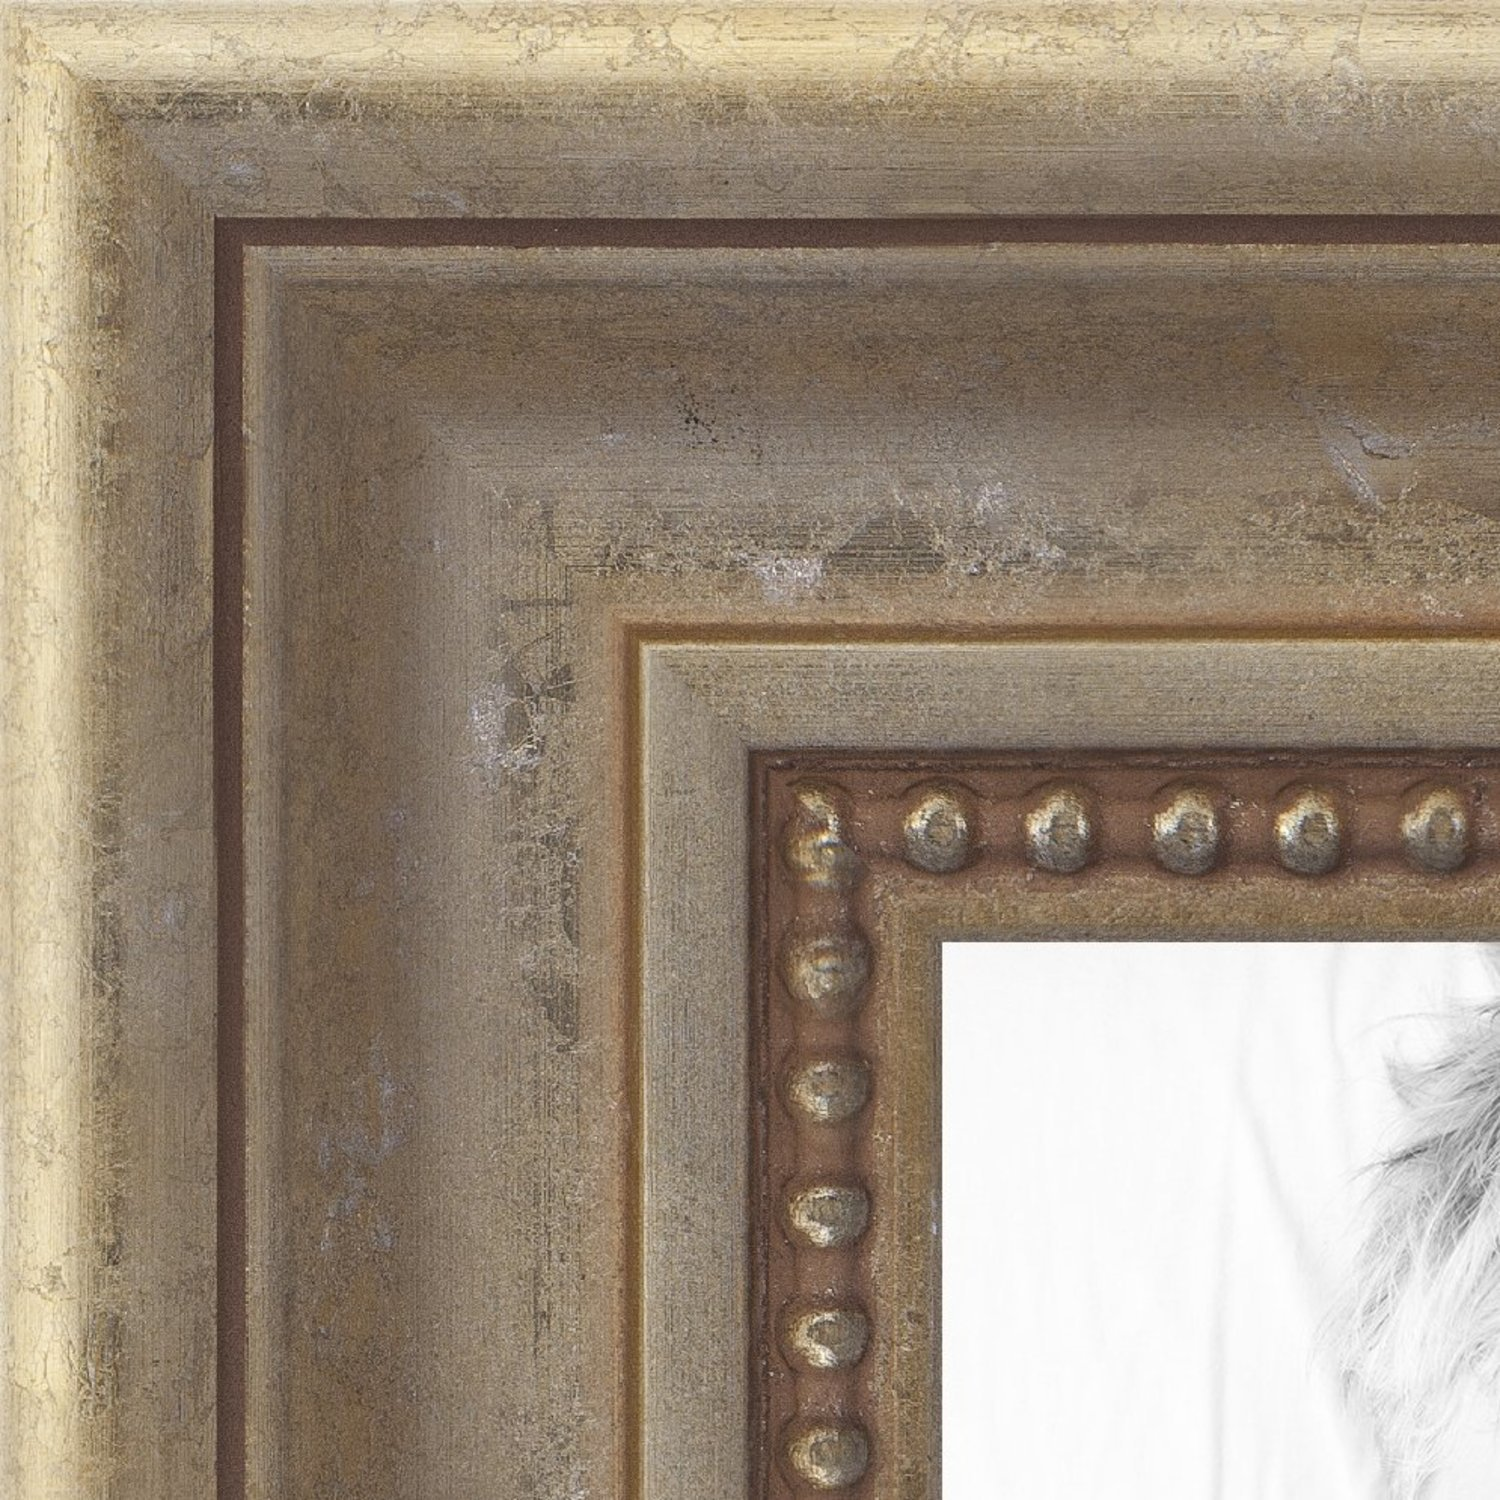 ArtToFrames 24x36 inch Aged White Gold with Beaded Detailing Wood Picture Frame, WOMD8808-24x36